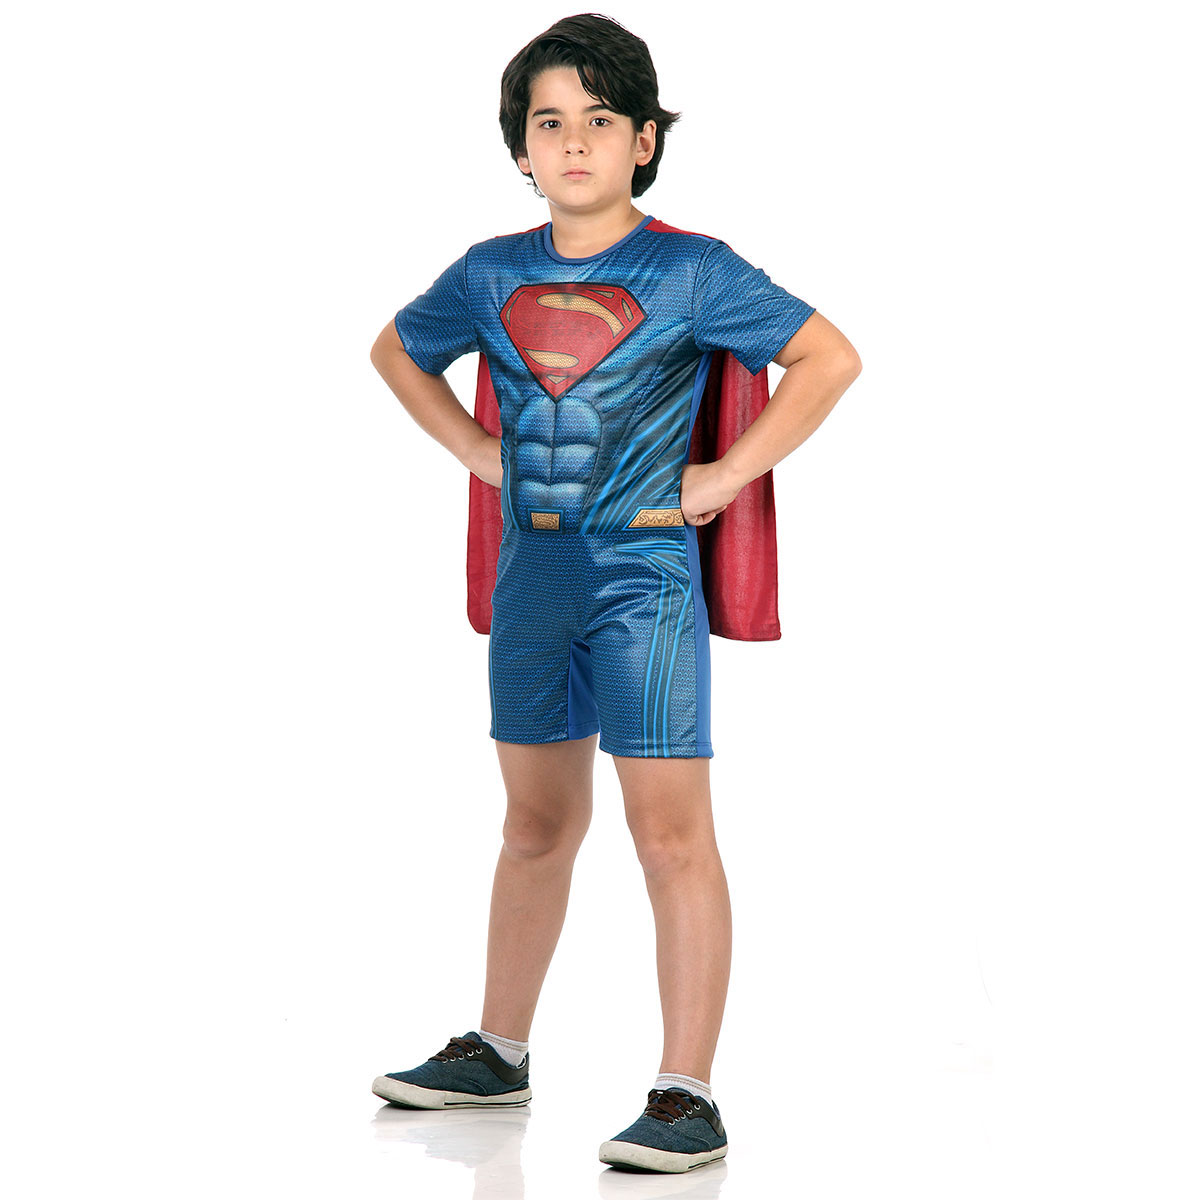 Fantasia Infantil Batman Vs Superman Pop Superman com Musculatura